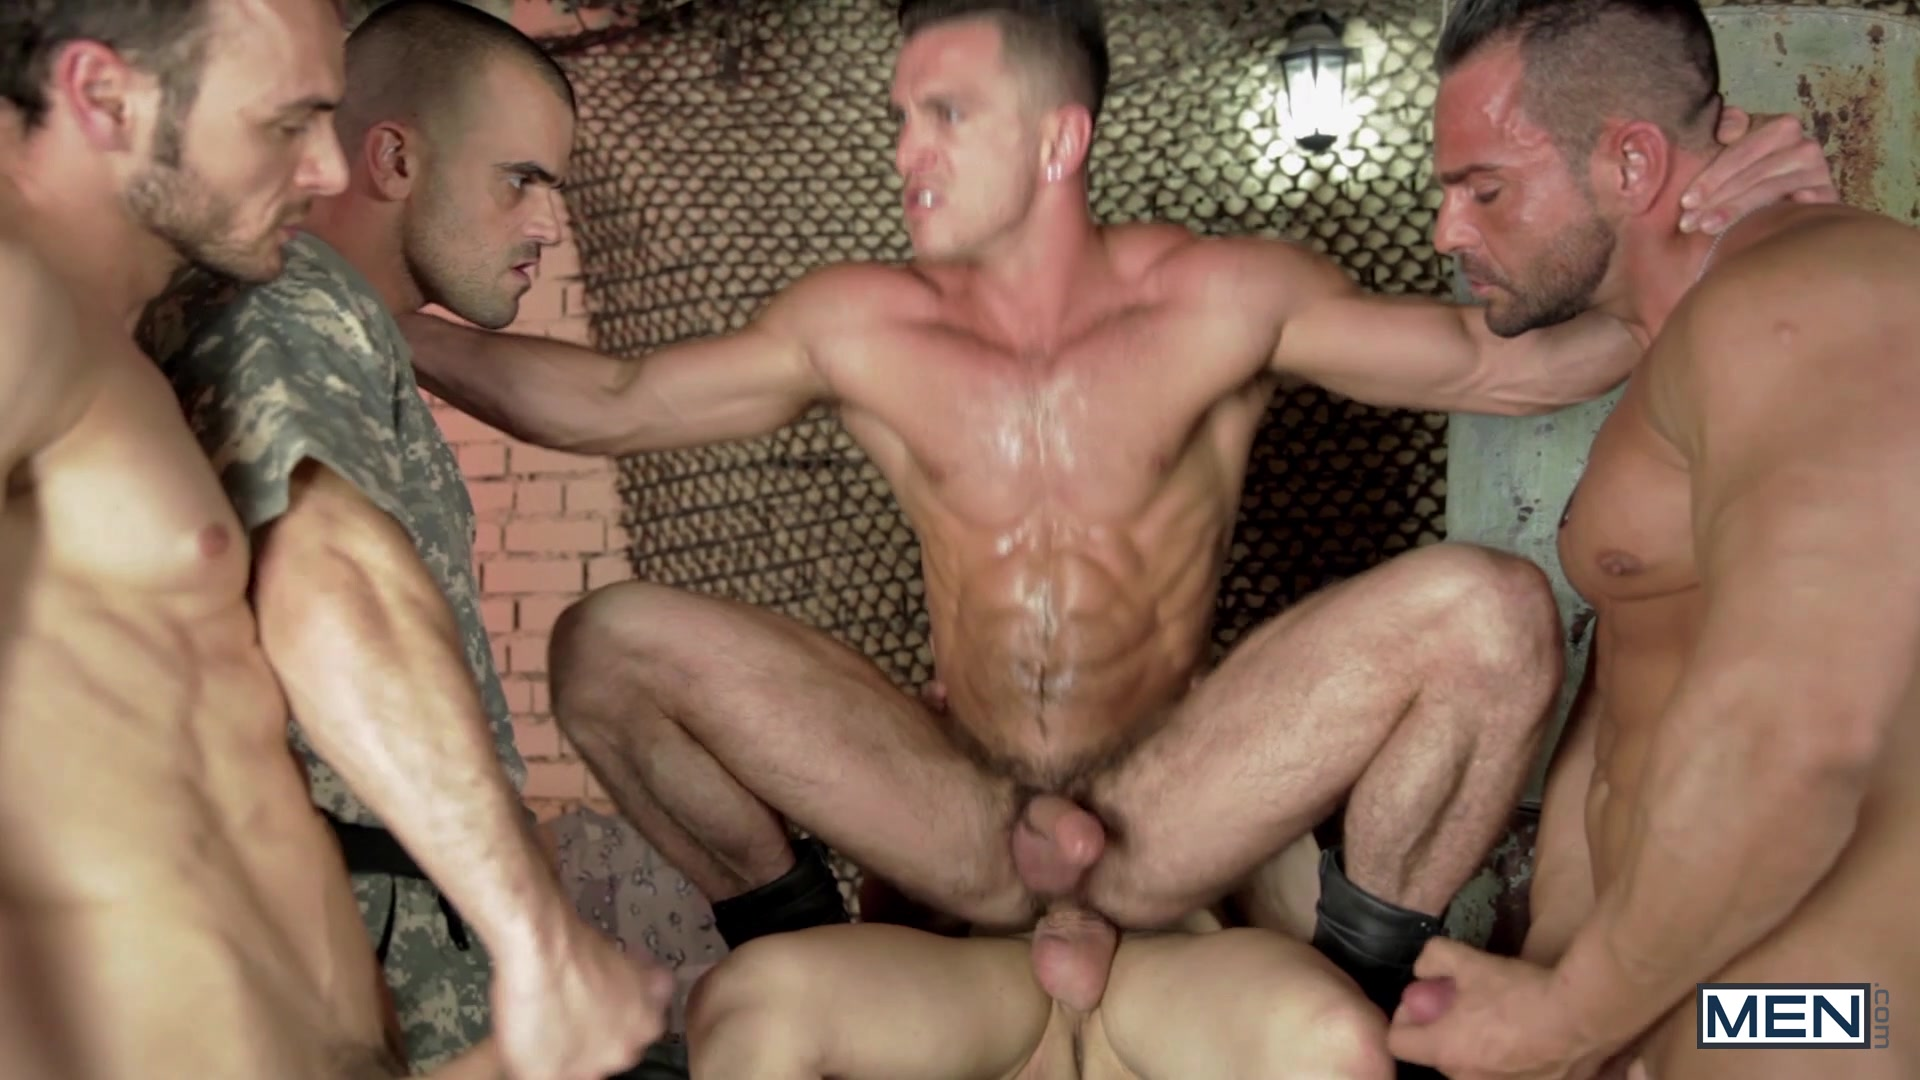 Jeff stryker dildo part 2 - 3 part 7